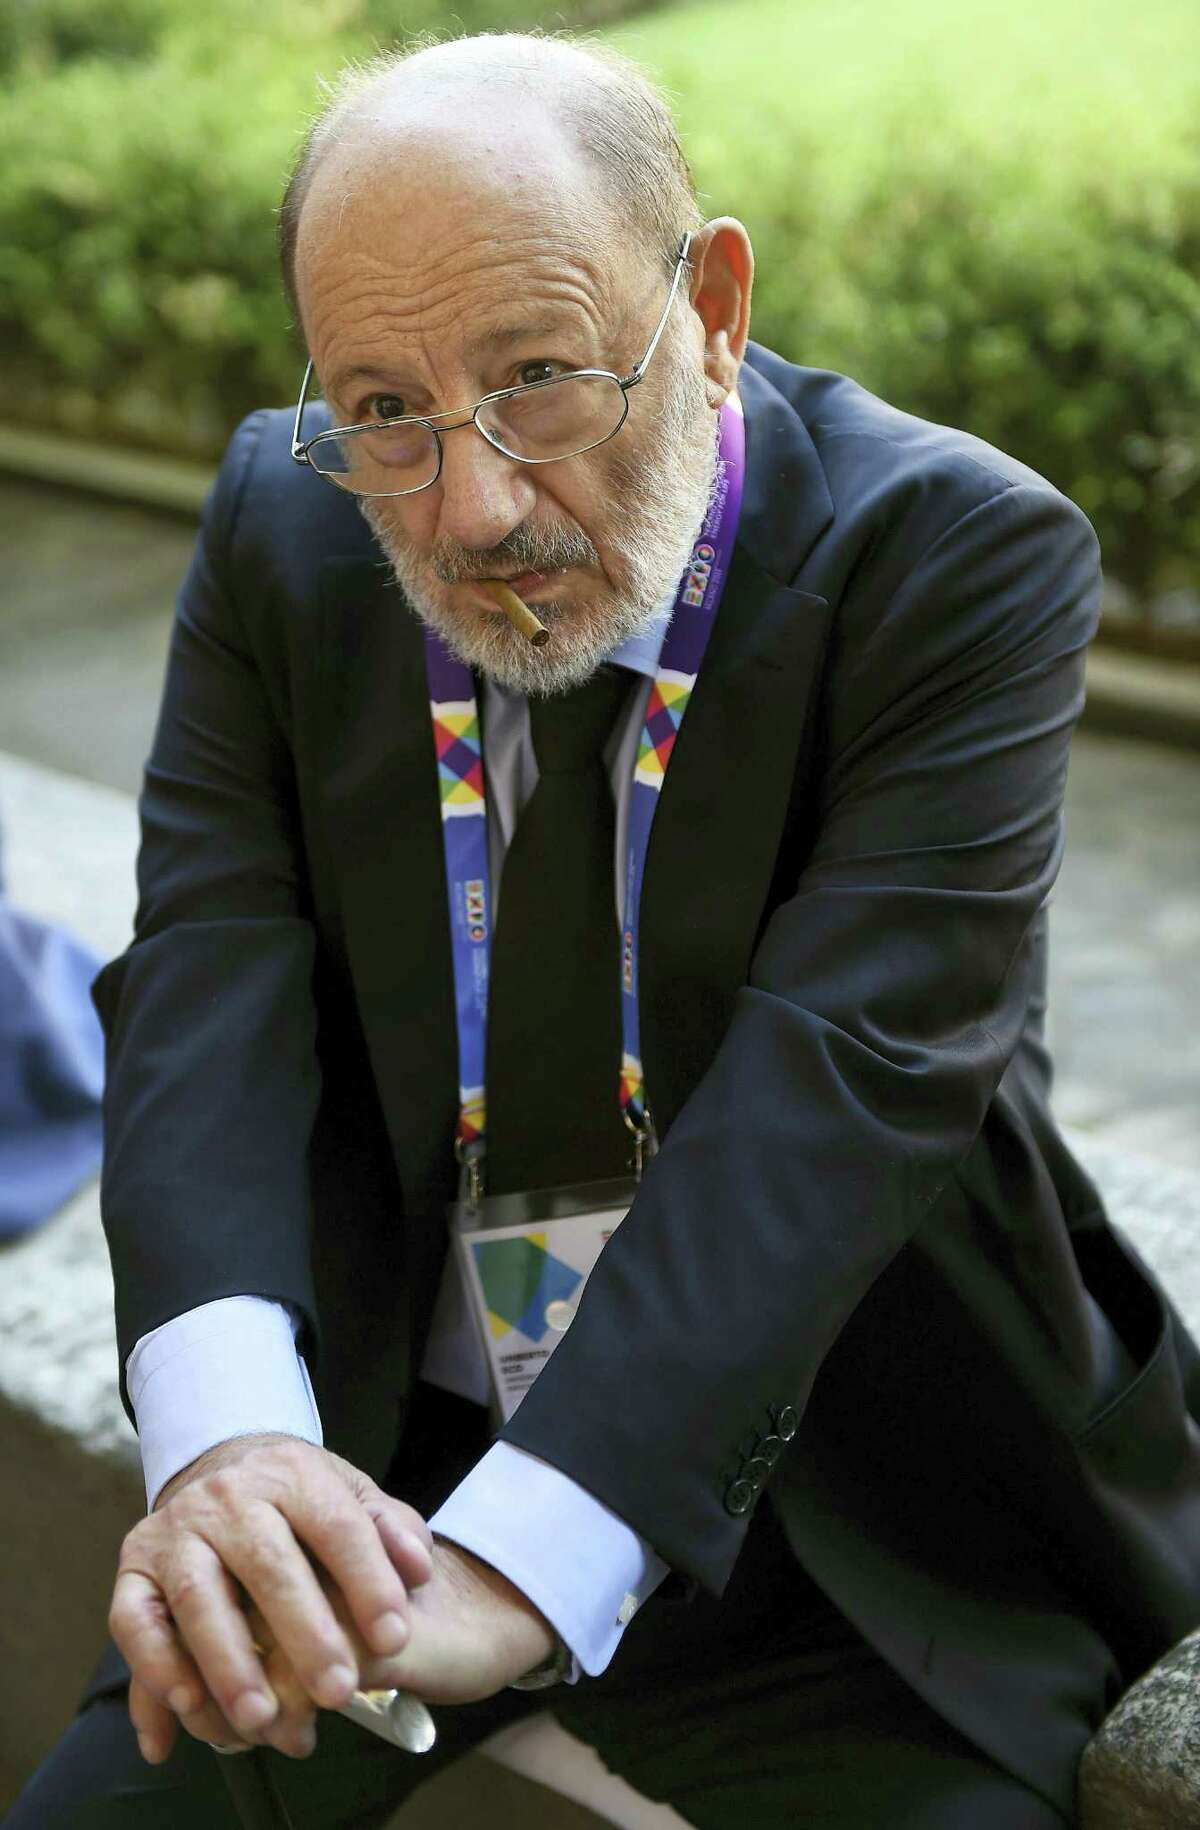 """In this Aug. 1, 2015 file photo, Italian writer Umberto Eco waits to visit Italian artist Leonardo Da Vinci's painting """"The last Supper"""", Milan, Italy. Eco, best known for the international best-seller """"The Name of the Rose,"""" died Friday, Feb. 19, 2016. He was 84."""